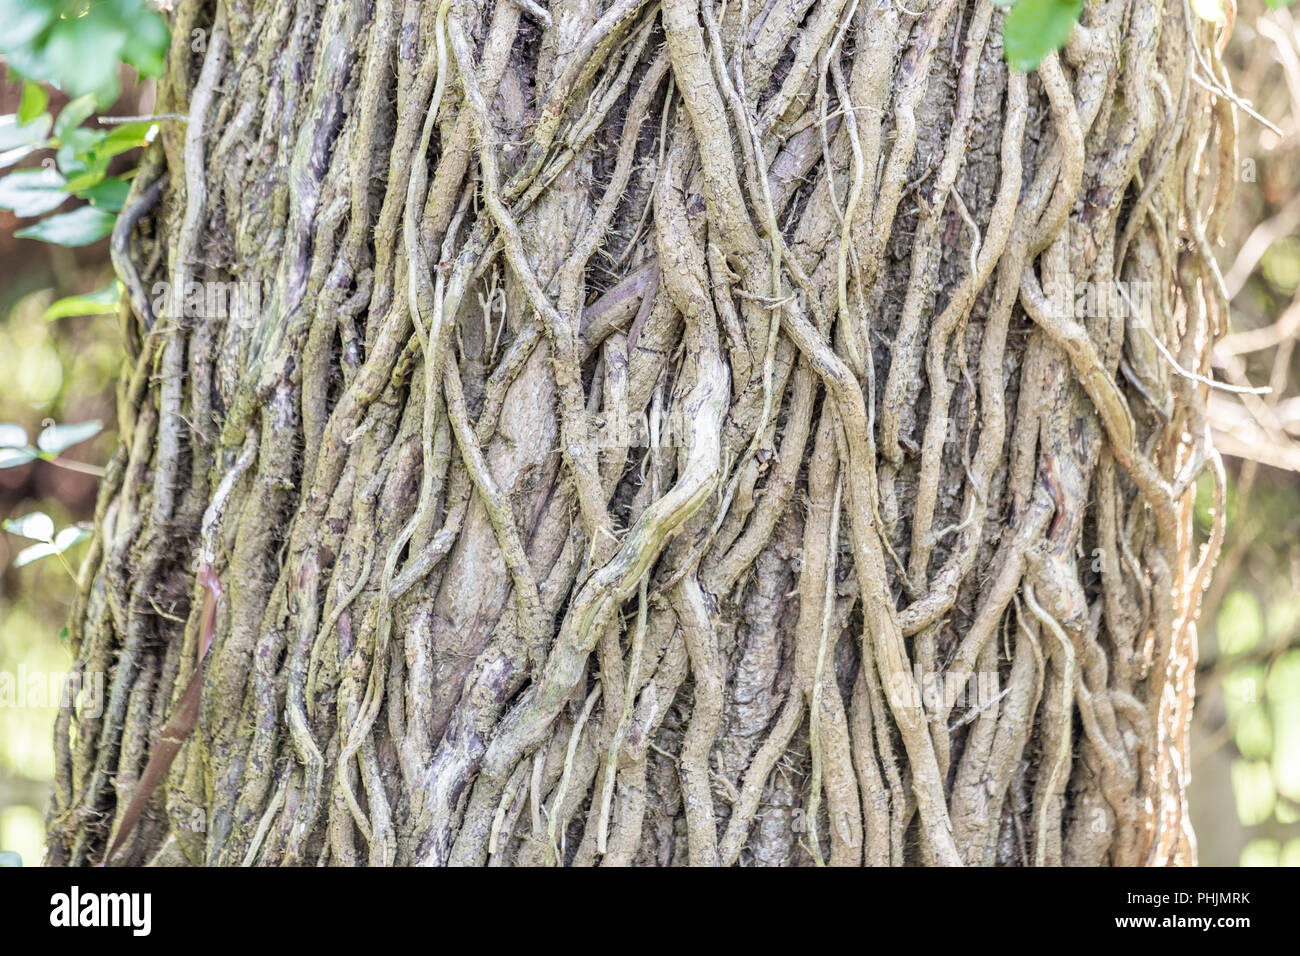 detail image of a plethora of vines on a large tree trunk - Stock Image